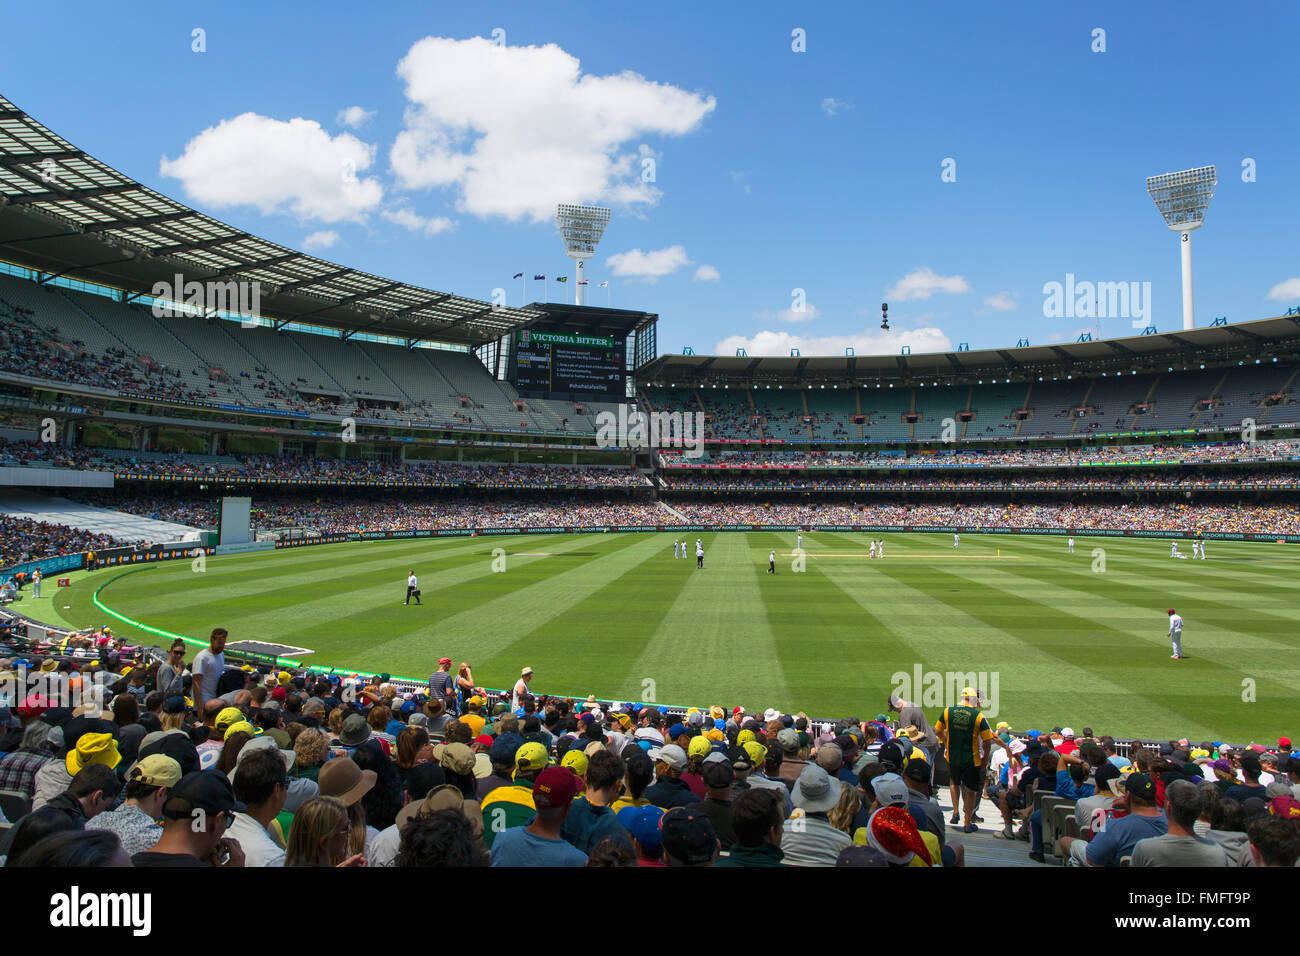 Partita di cricket a Melbourne Cricket Ground (MCG), Melbourne, Victoria, Australia Immagini Stock